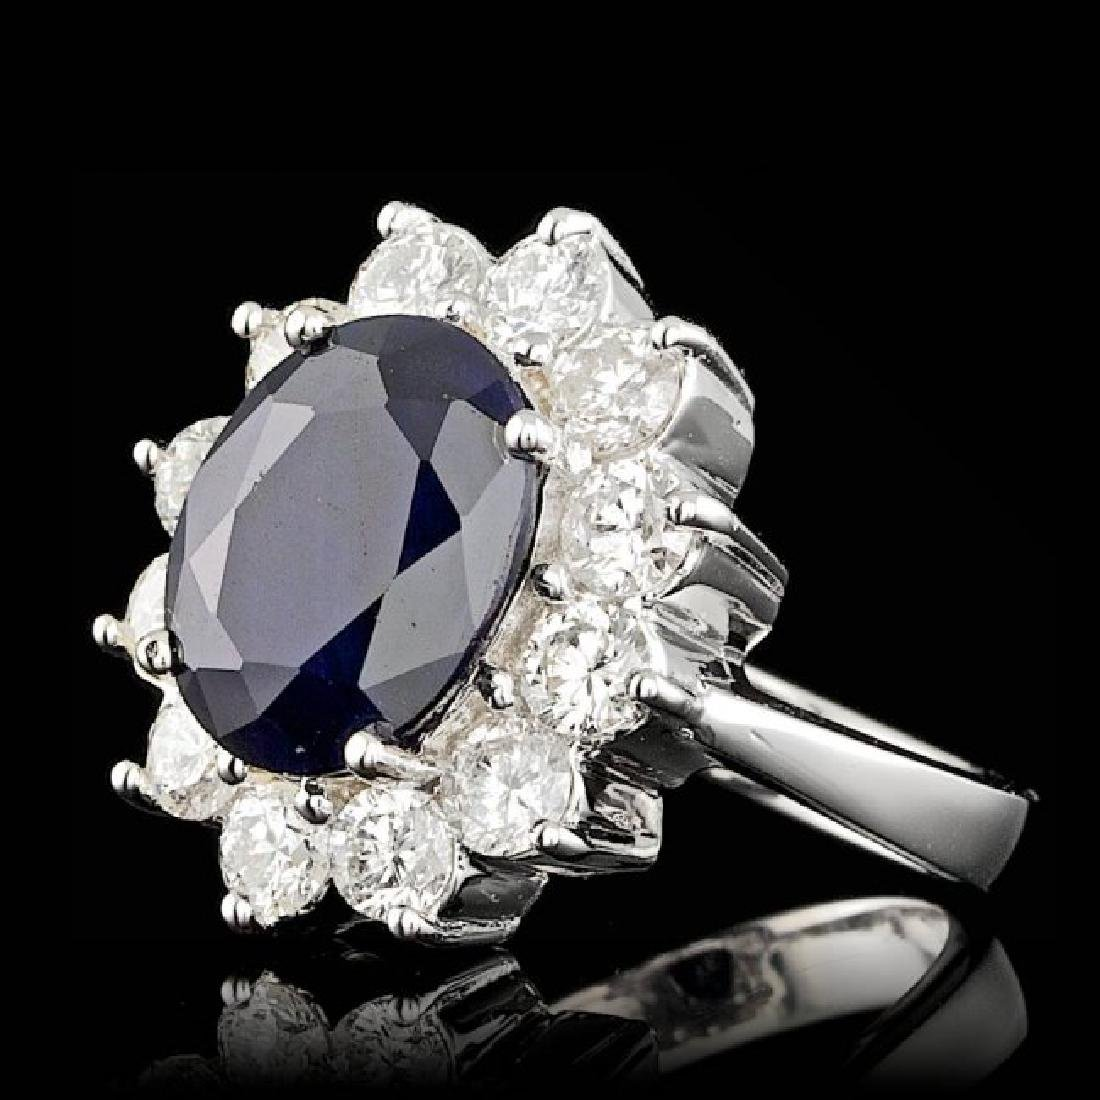 14k Gold 5.00ct Sapphire 2.50ct Diamond Ring - 2